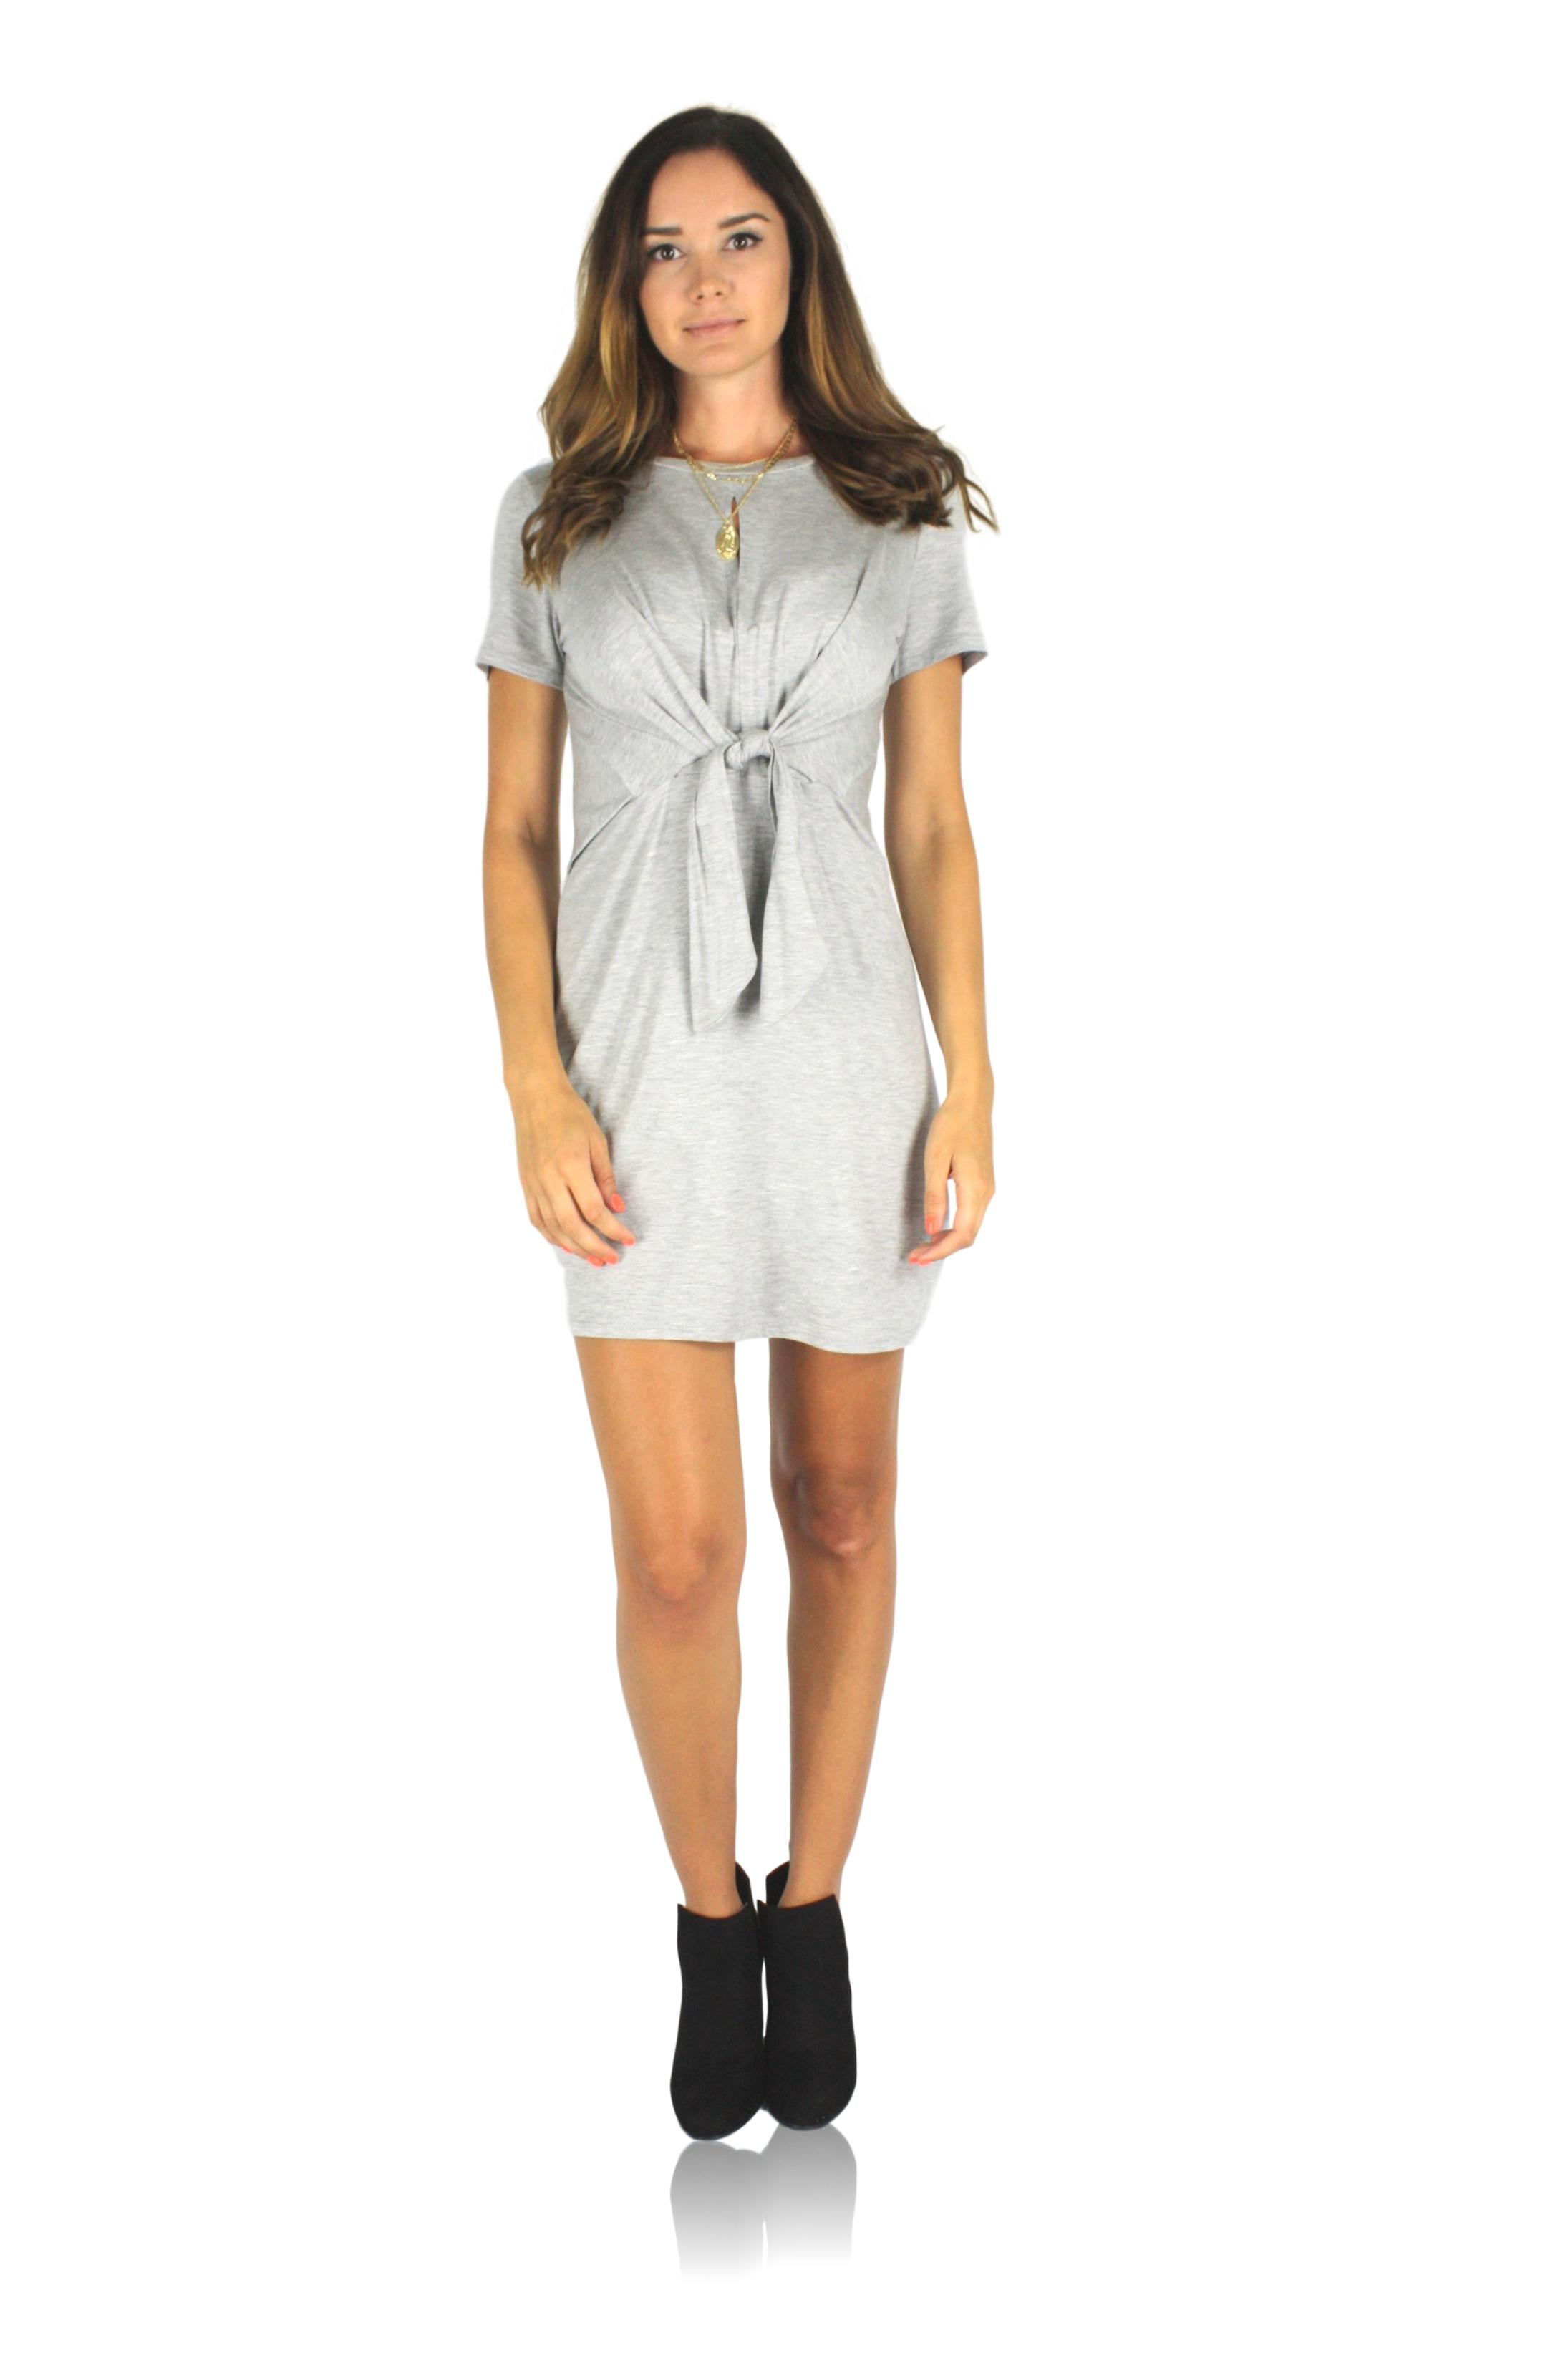 TIE DOWN SHIRT DRESS / FINAL CLEARANCE